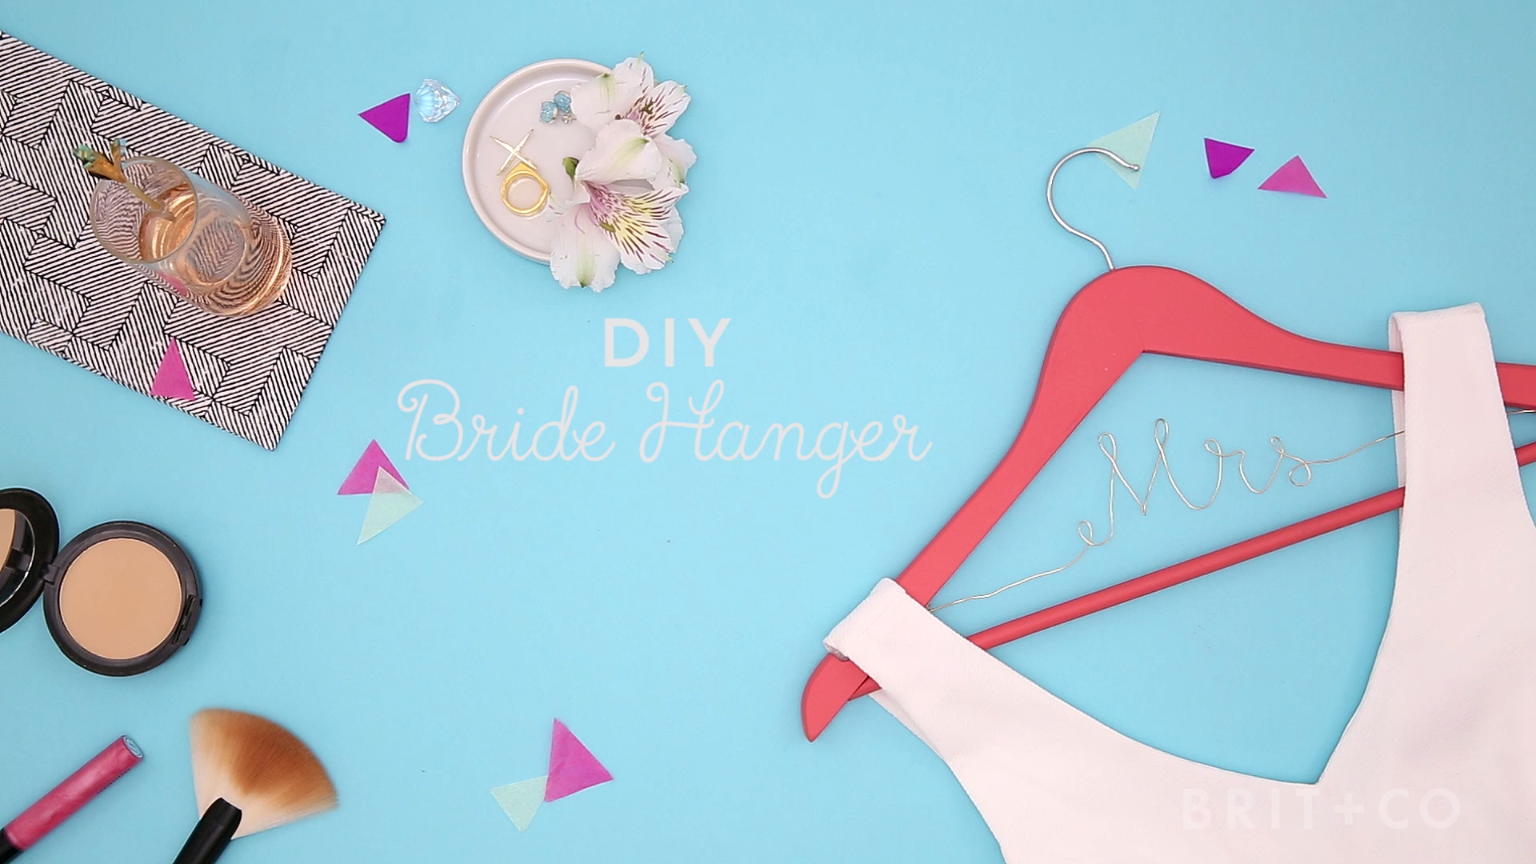 Full hd diy wedding hanger for mobile phones pics and learning